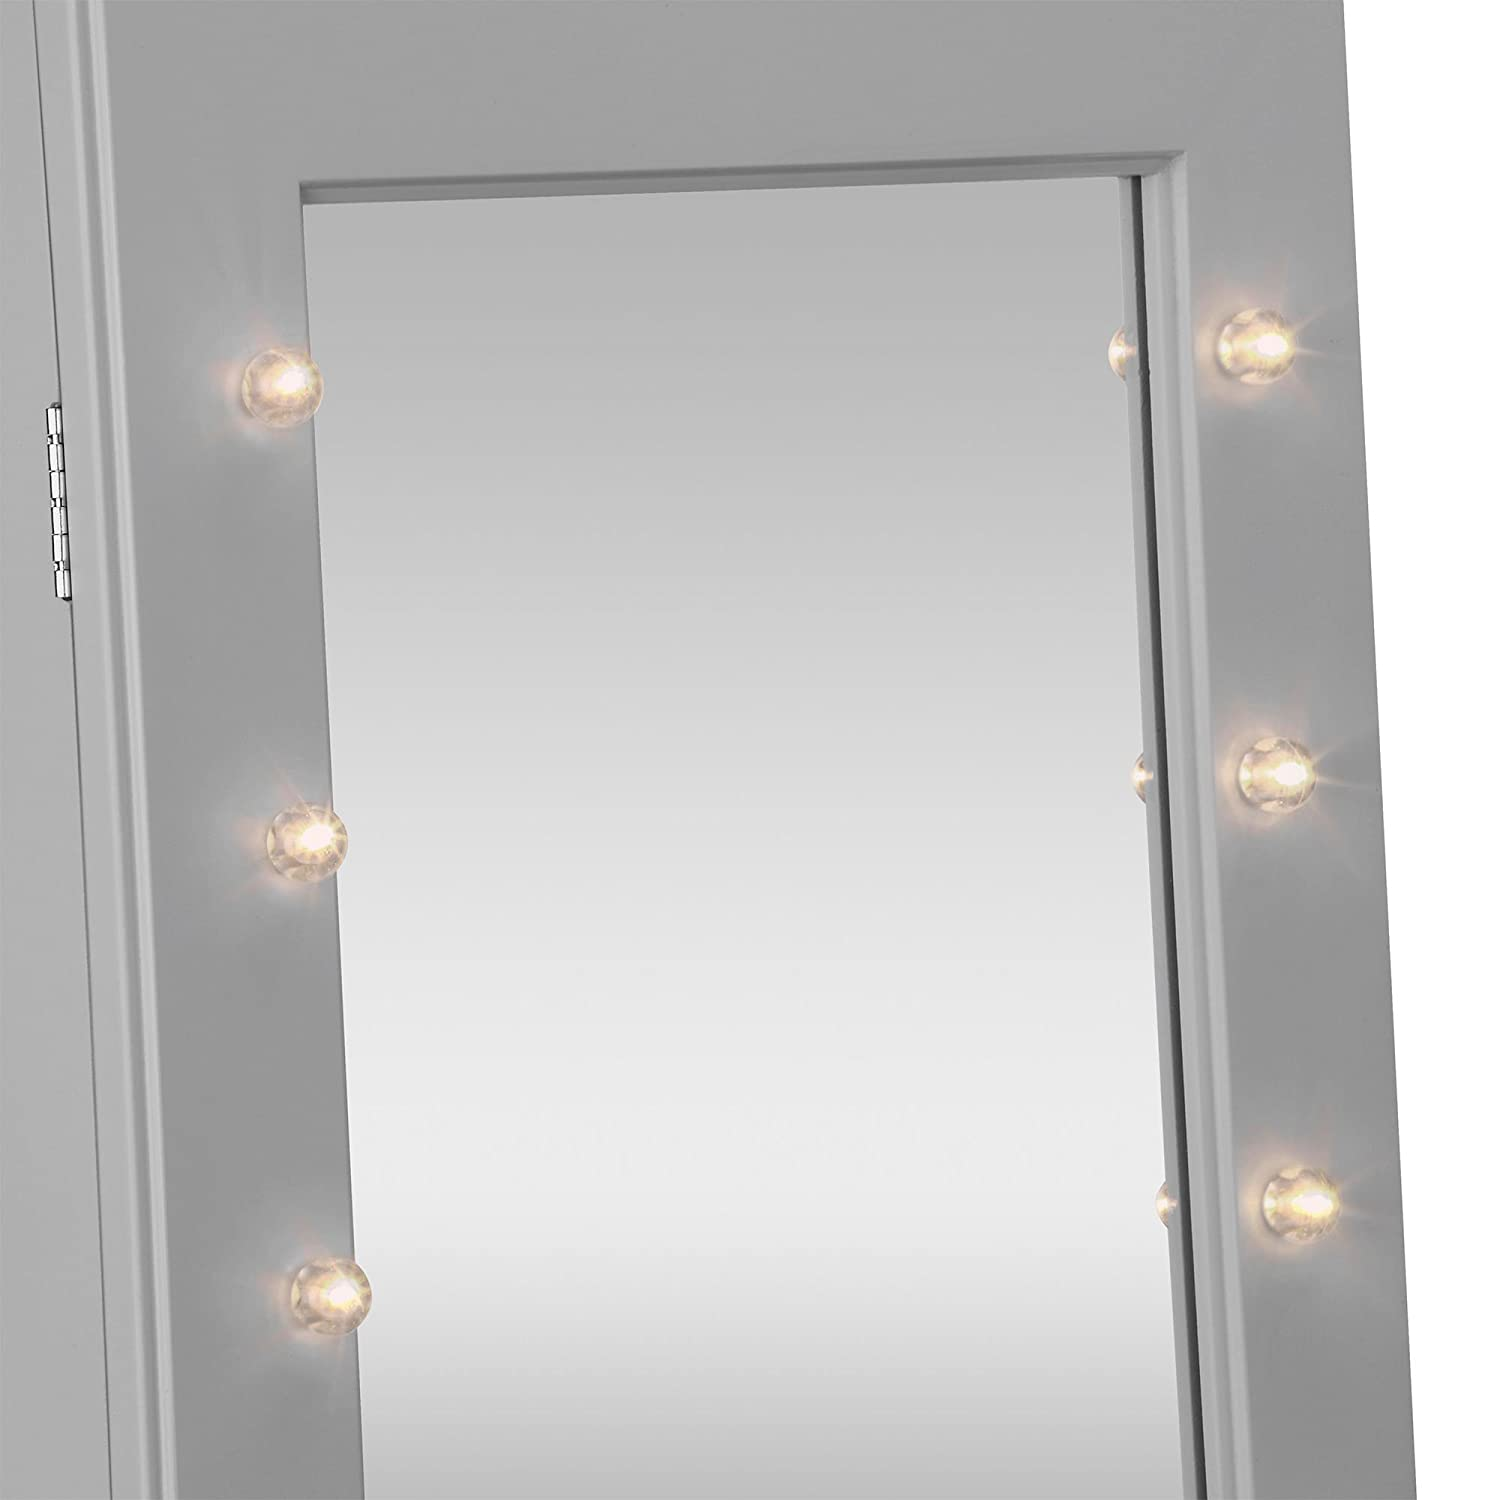 Amazoncom Beautify Mirrored Jewelry Armoire with LED Lights